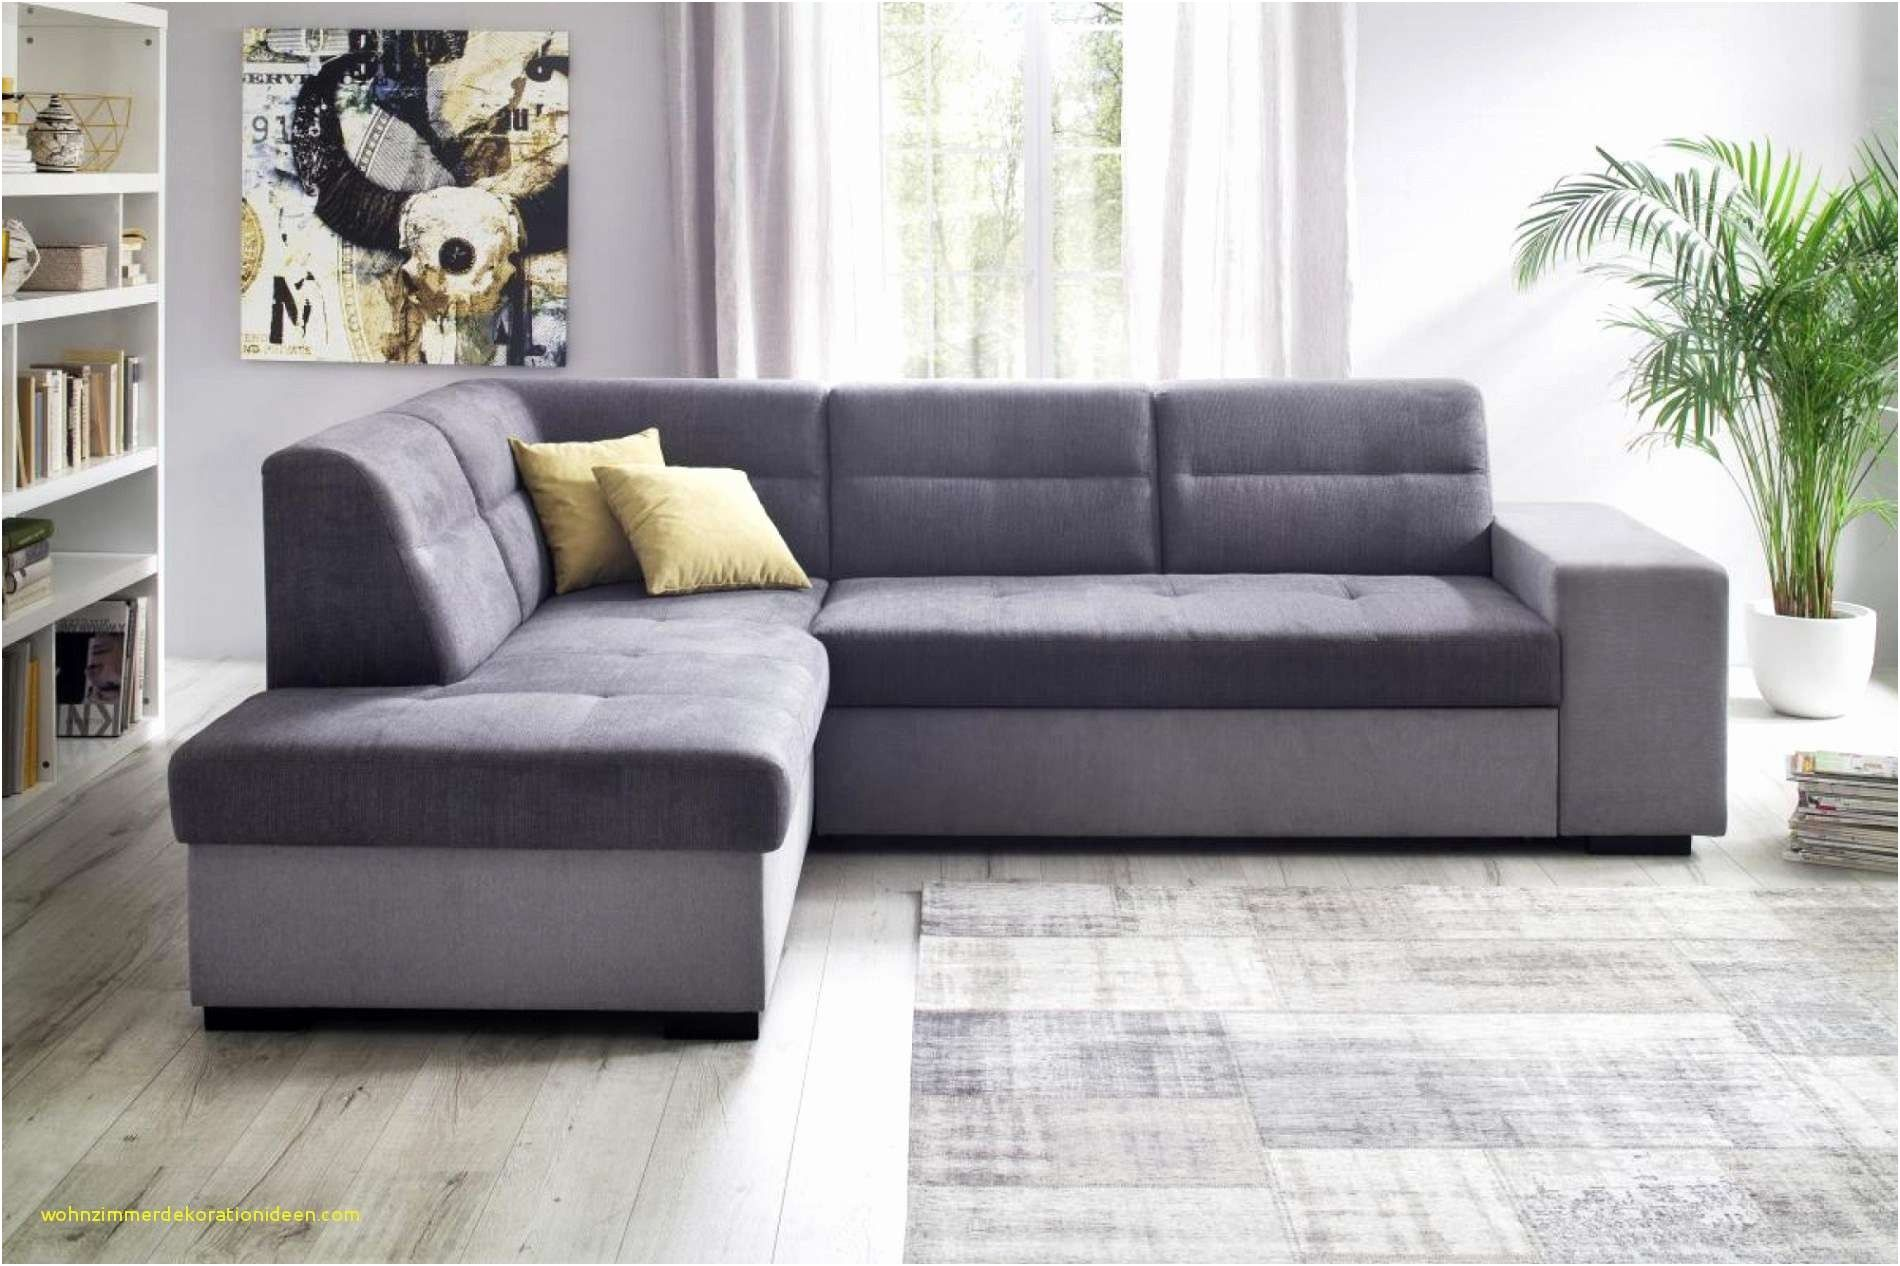 Smart Ecksofa Anna Interessant U Sofa Günstig Check More At Https Tridentbeauties